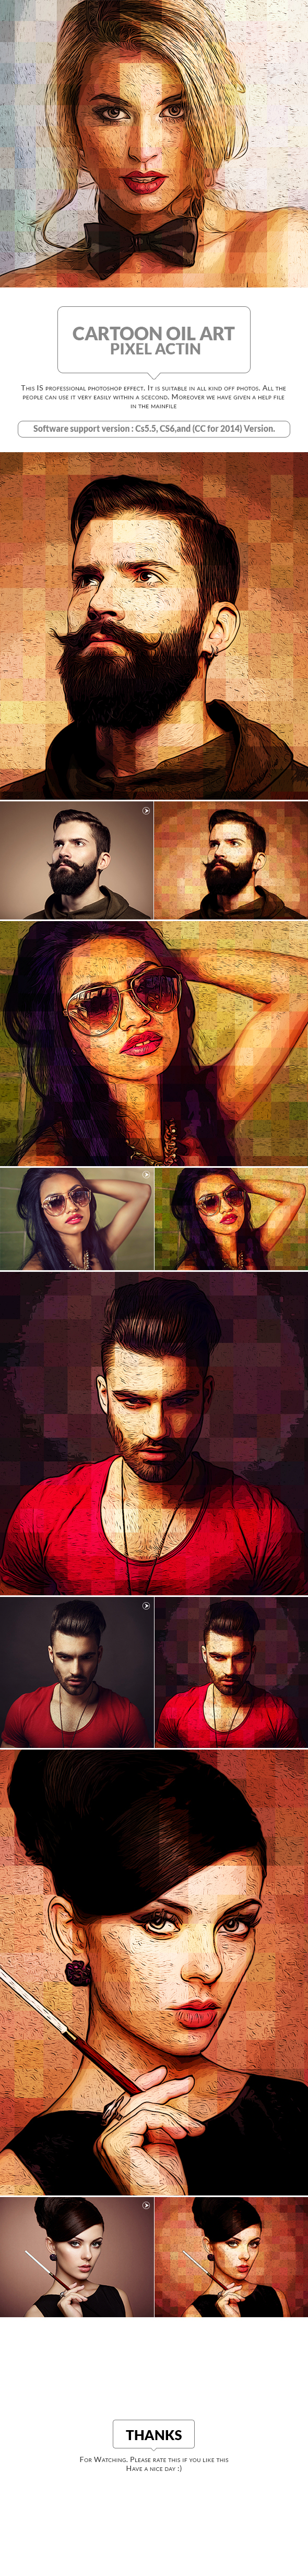 Cartoon Oil Art Pixel Action - Photo Effects Actions